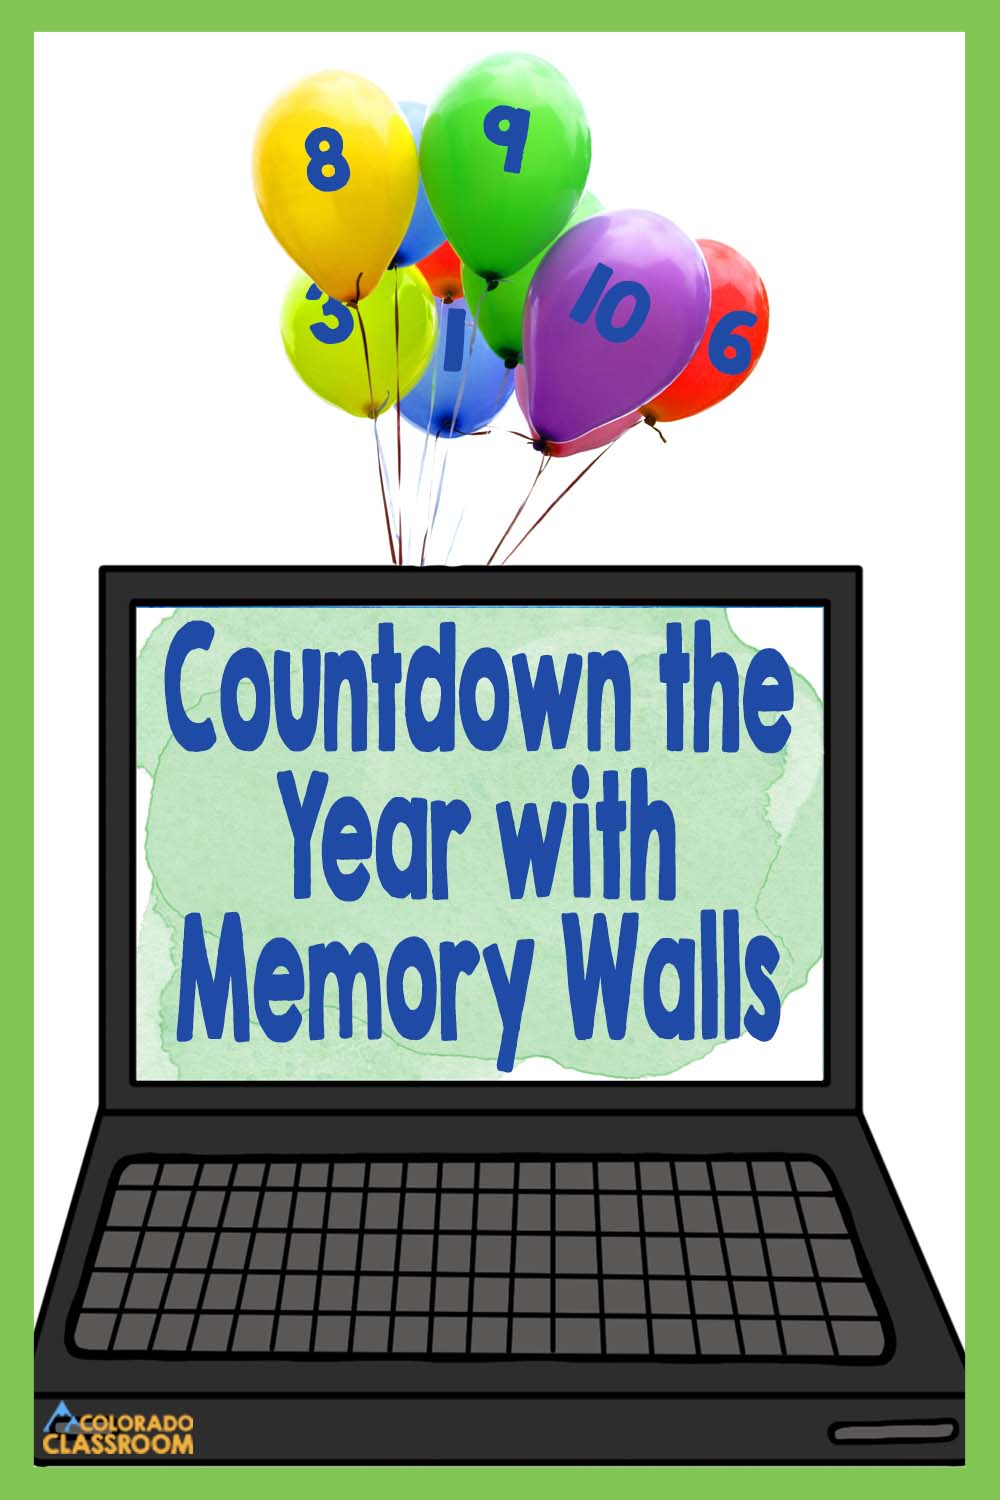 This pin shows a balloon countdown with a digital memory wall on a computer screen to help celebrate the end of the school year.